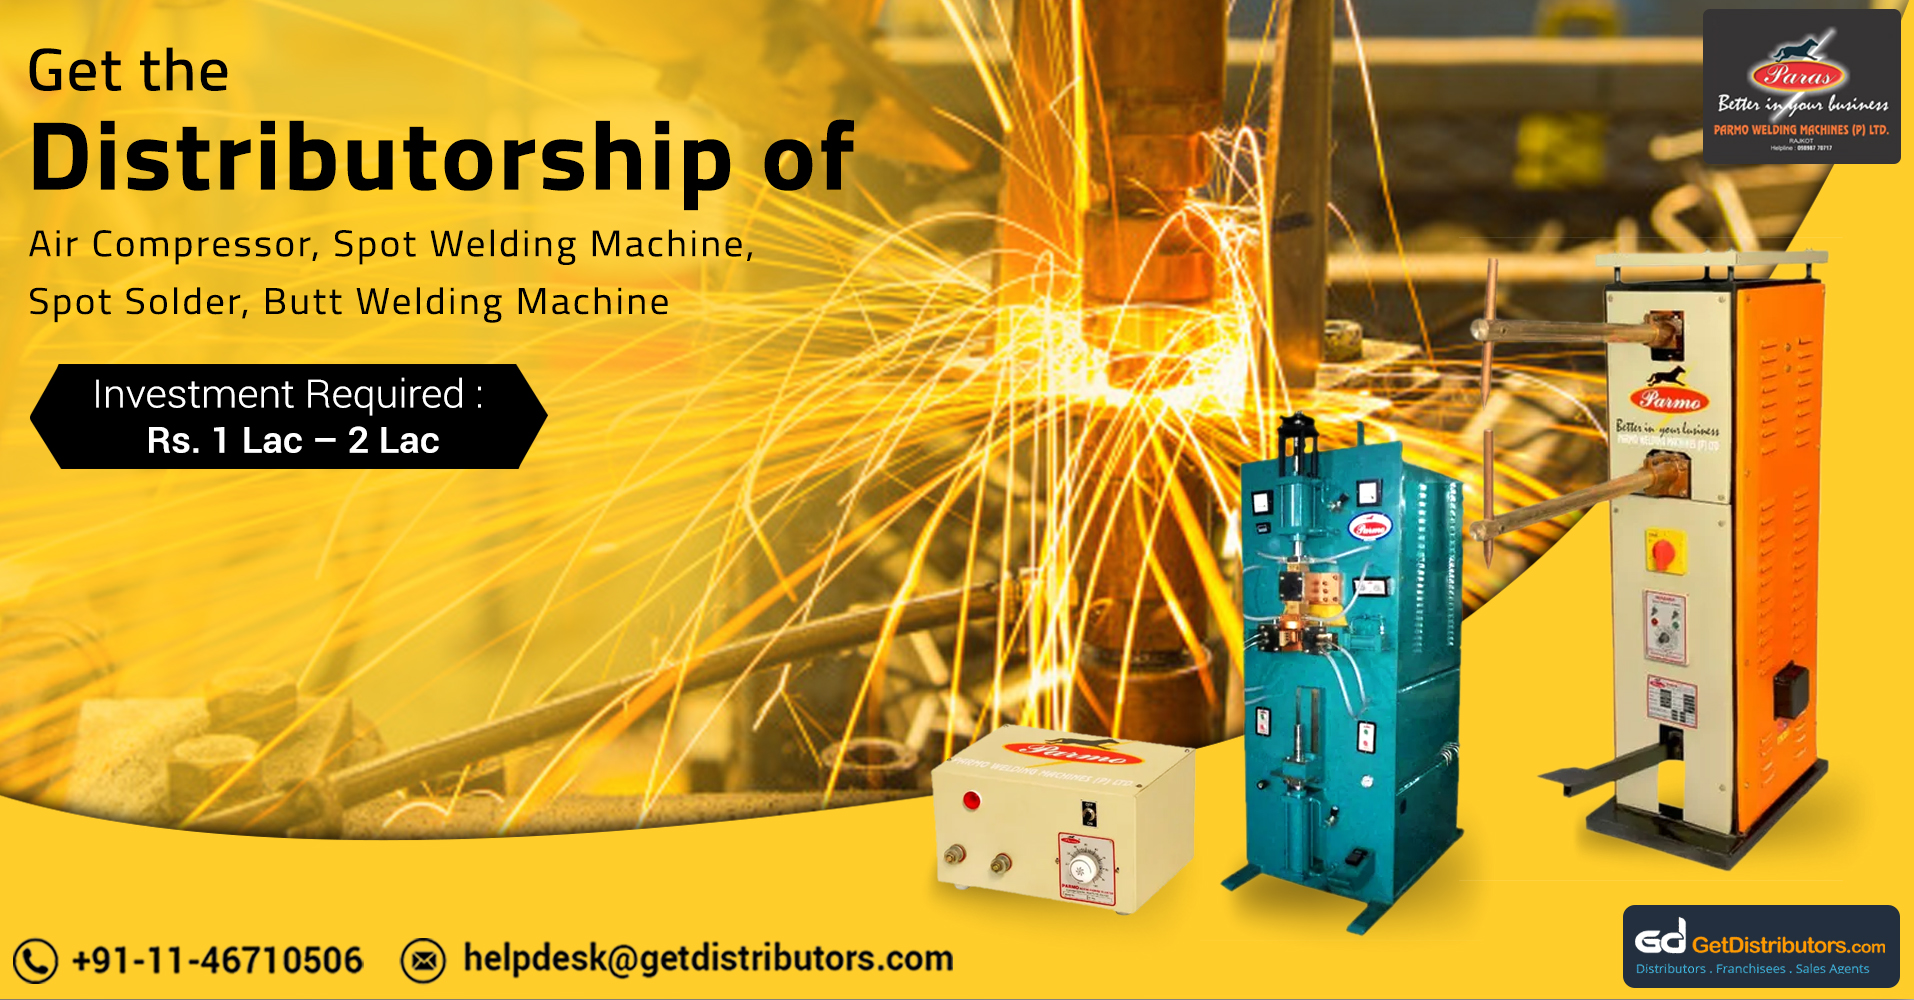 Power Efficient Welding Machinery, Air Compressors And Allied Products